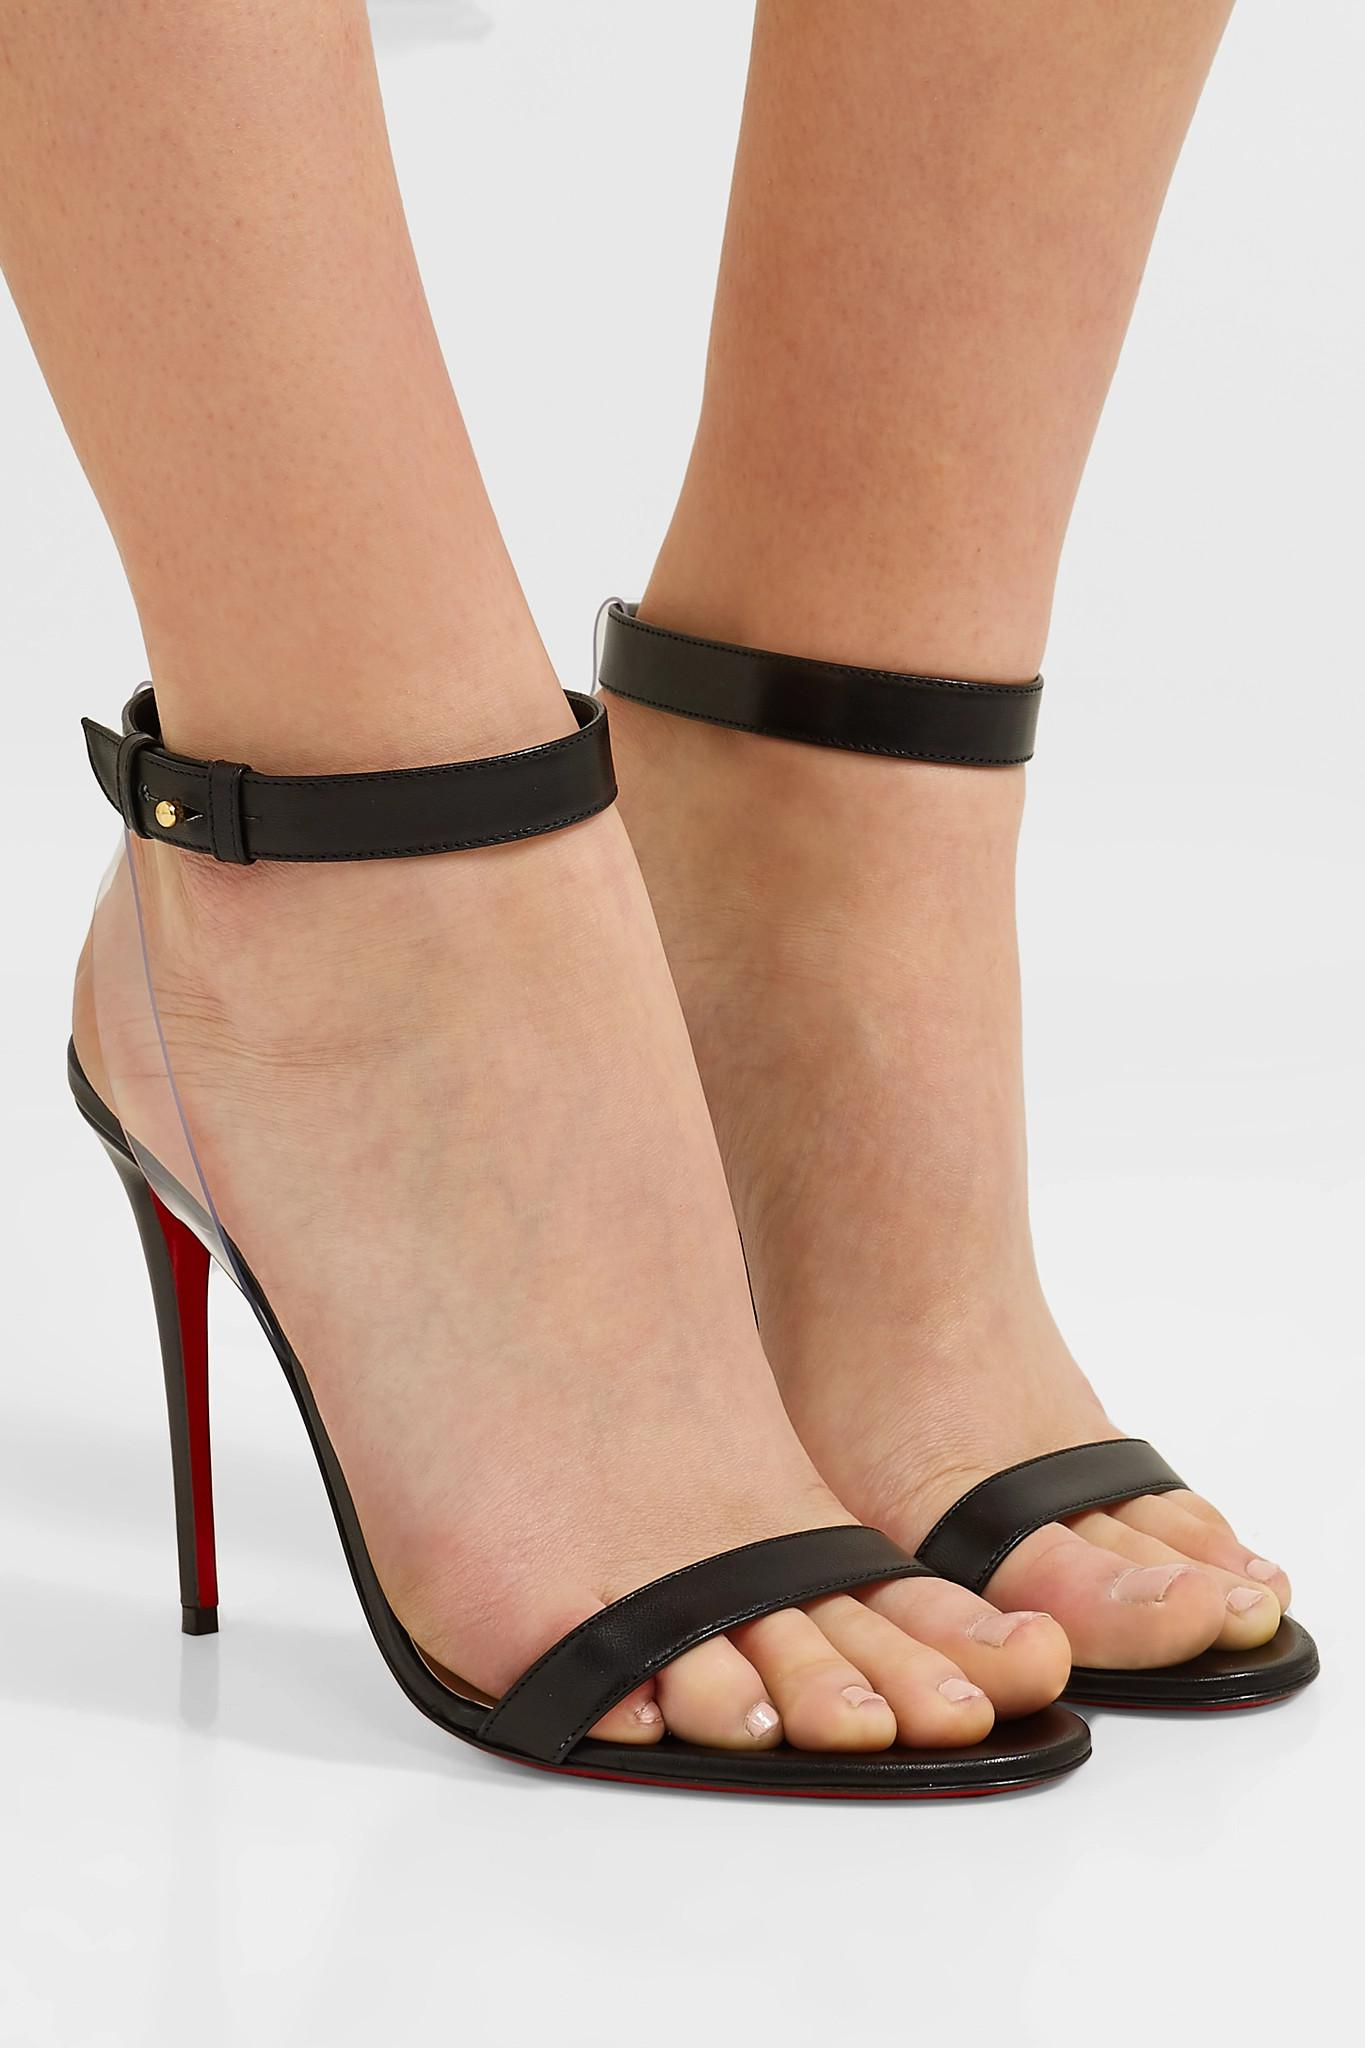 d118f10ad5a Lyst - Christian Louboutin Jonatina 100mm Leather Sandals in Black